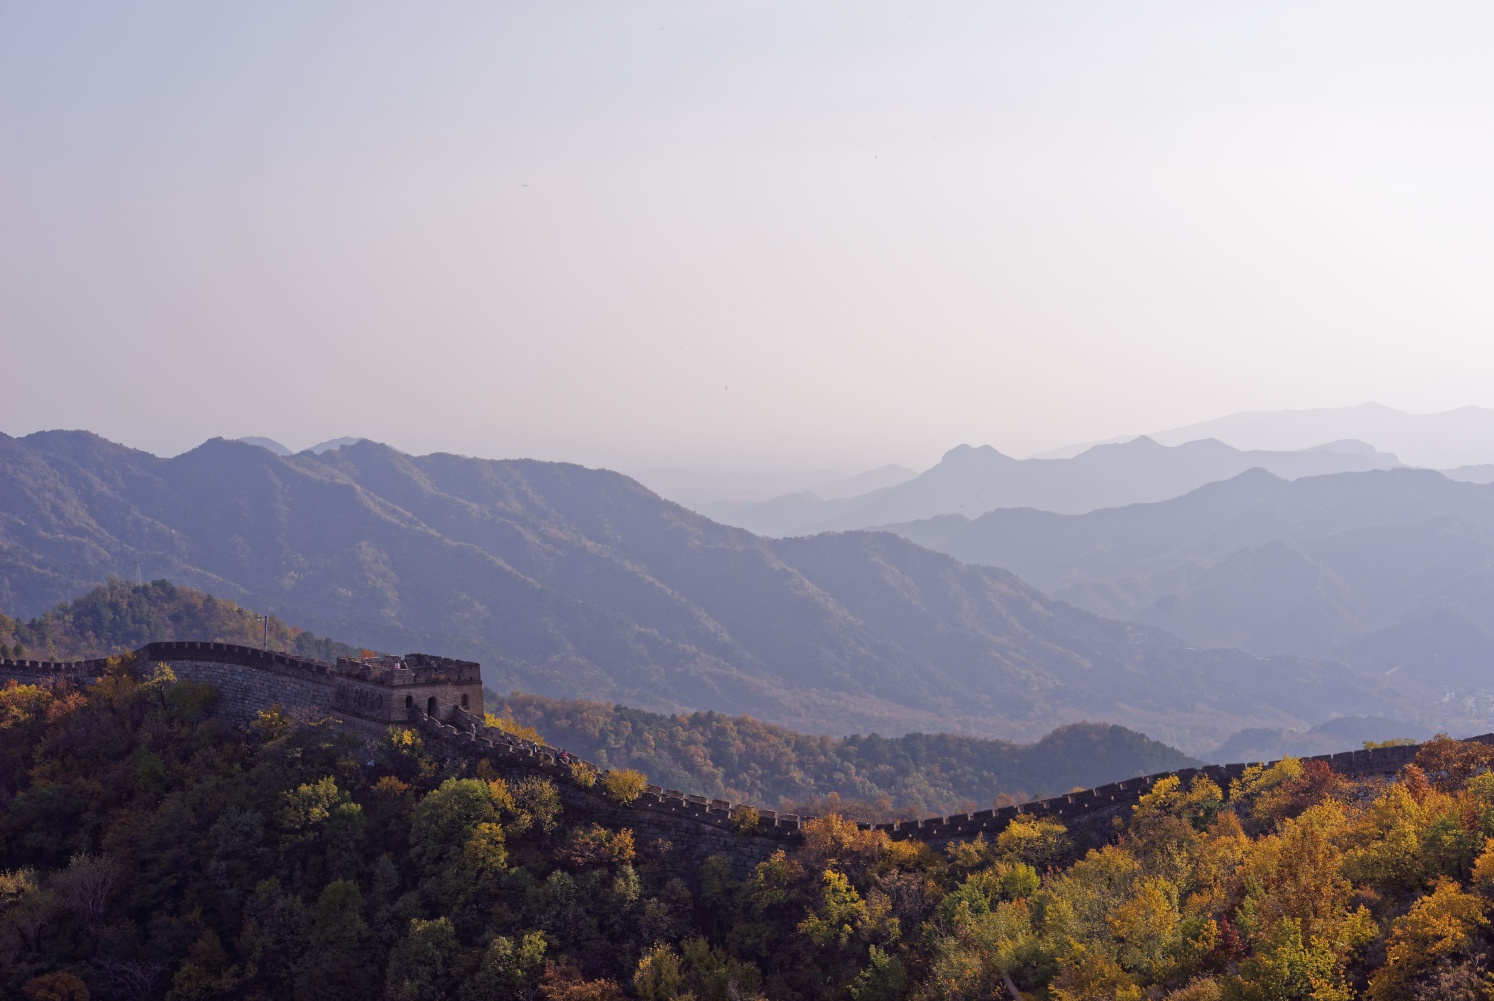 Days 15-16: The Great Wall & Fly Home - Seeing really is believing with China's Great Wall. Walk and climb your way up and down this magnificent structure, looking out across mountains around you like people have for thousands of years.